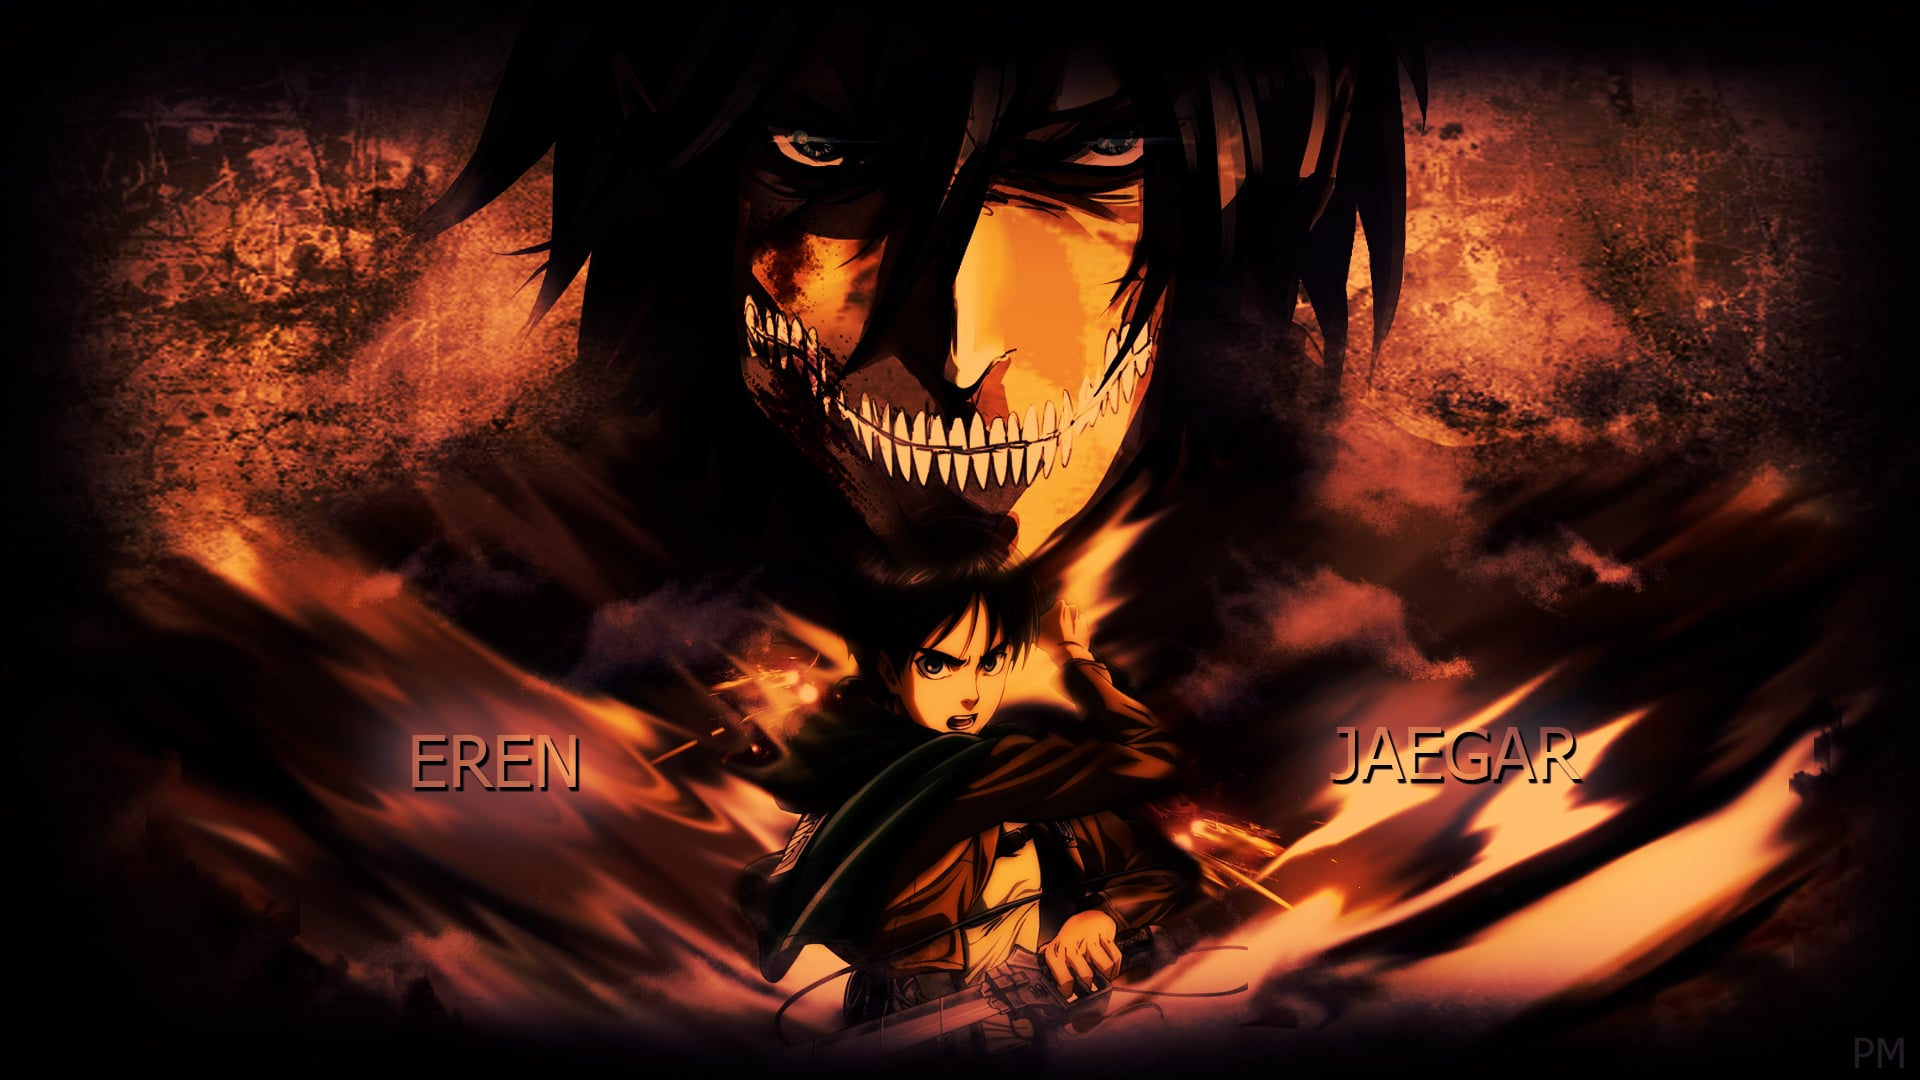 17 eren yeager attack on titan wallpapers hd download